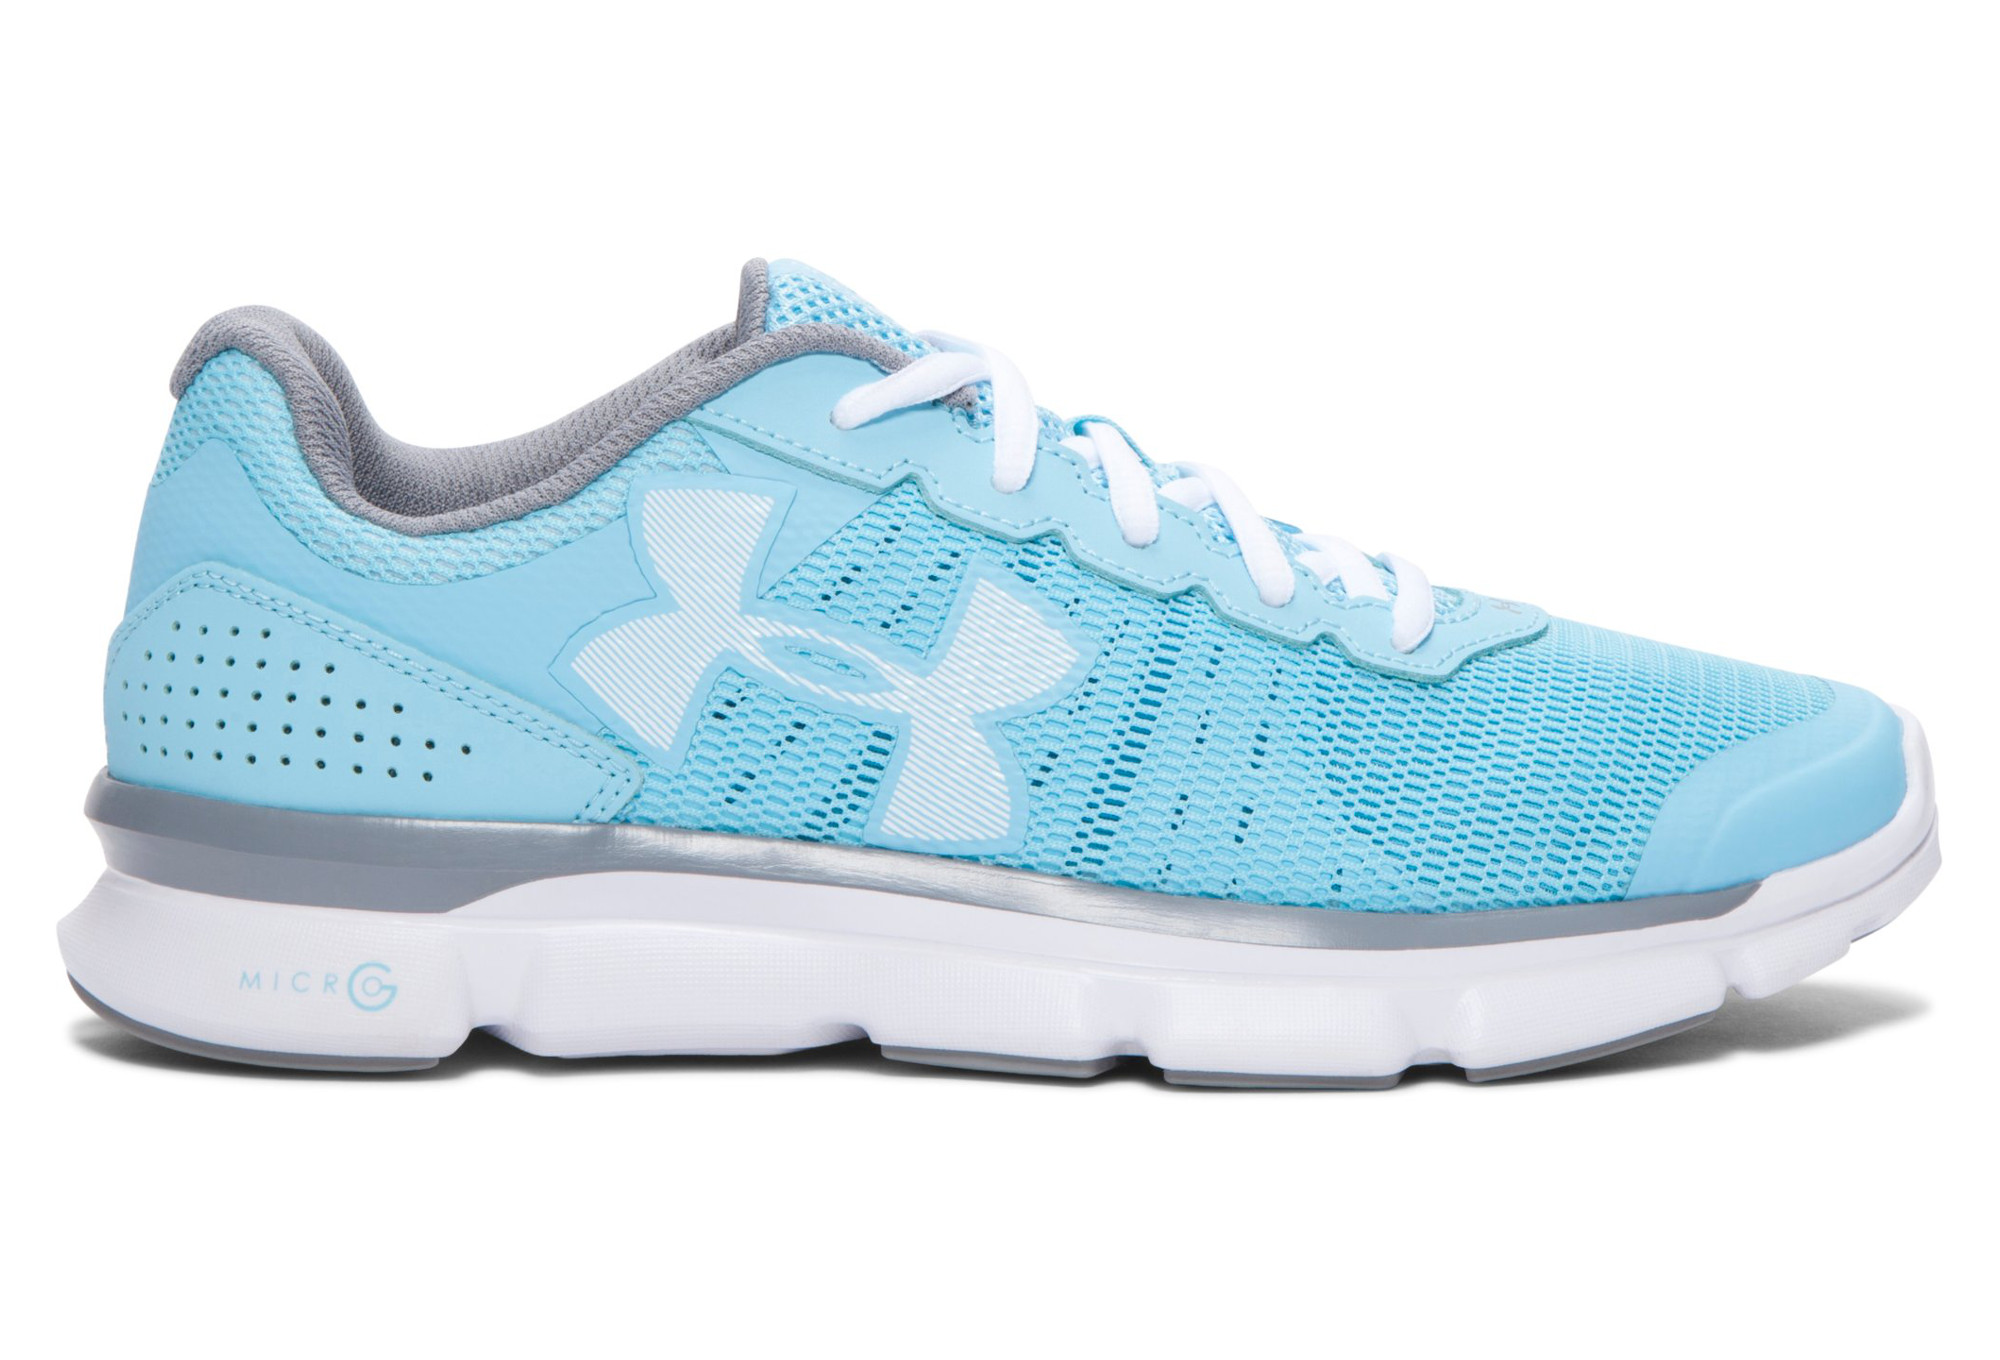 UNDER ARMOUR Pair of Shoes MICRO G SPEED SWIFT Blue White Women ... 5d593d1e14